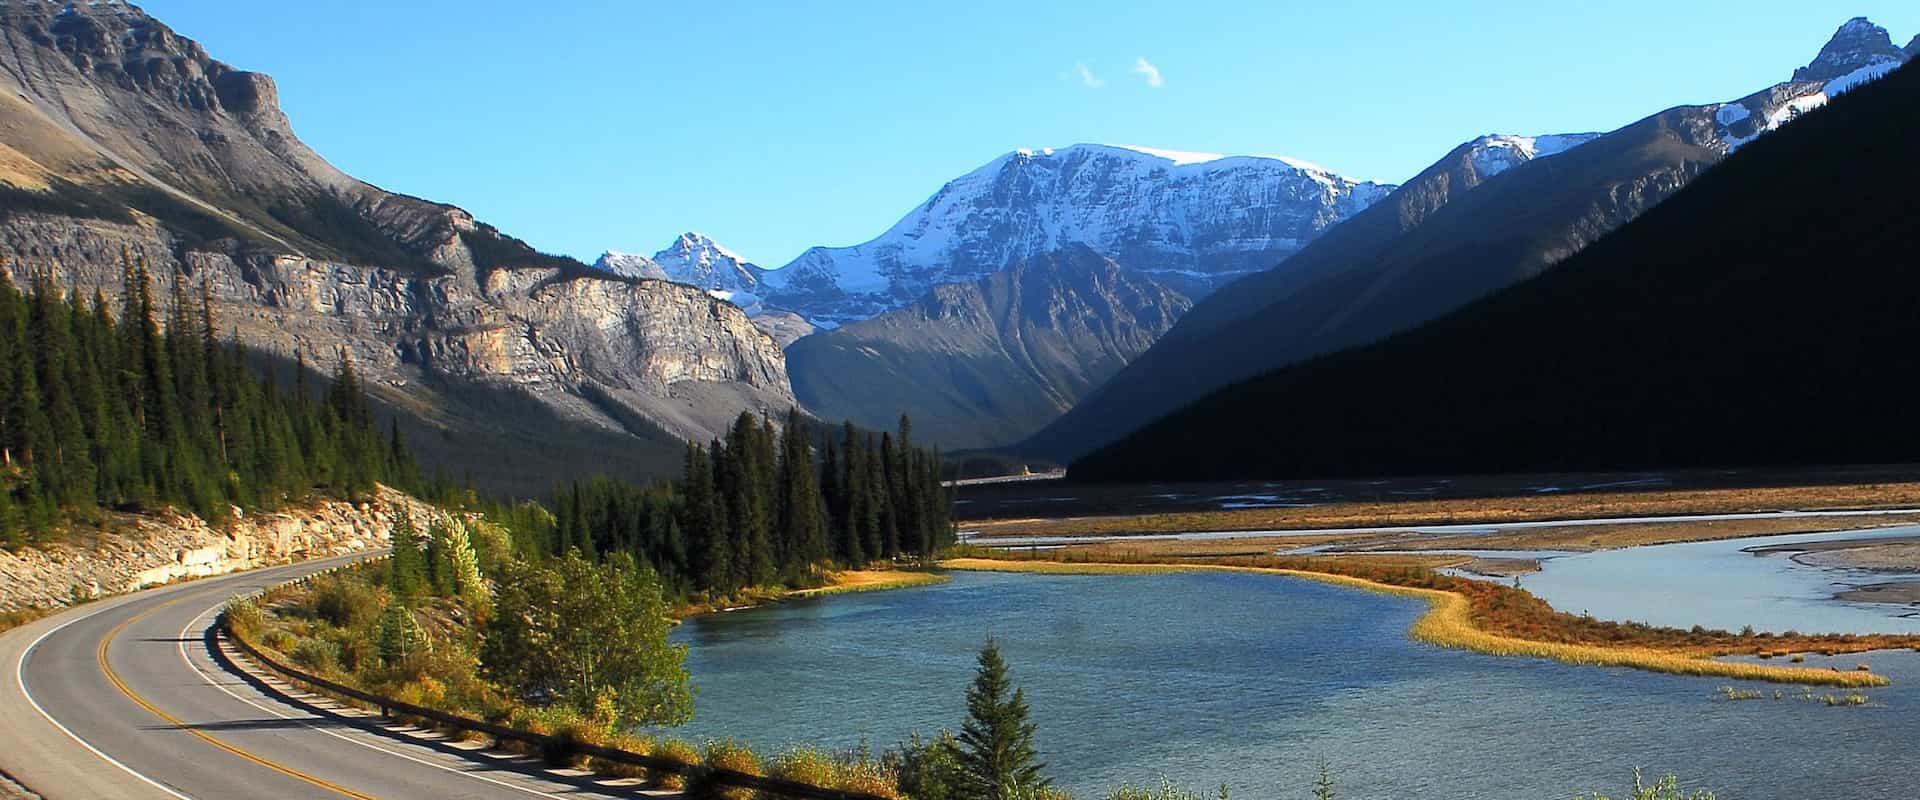 Discover the beauty of the Icefields Parkway in the Canadian Rockies